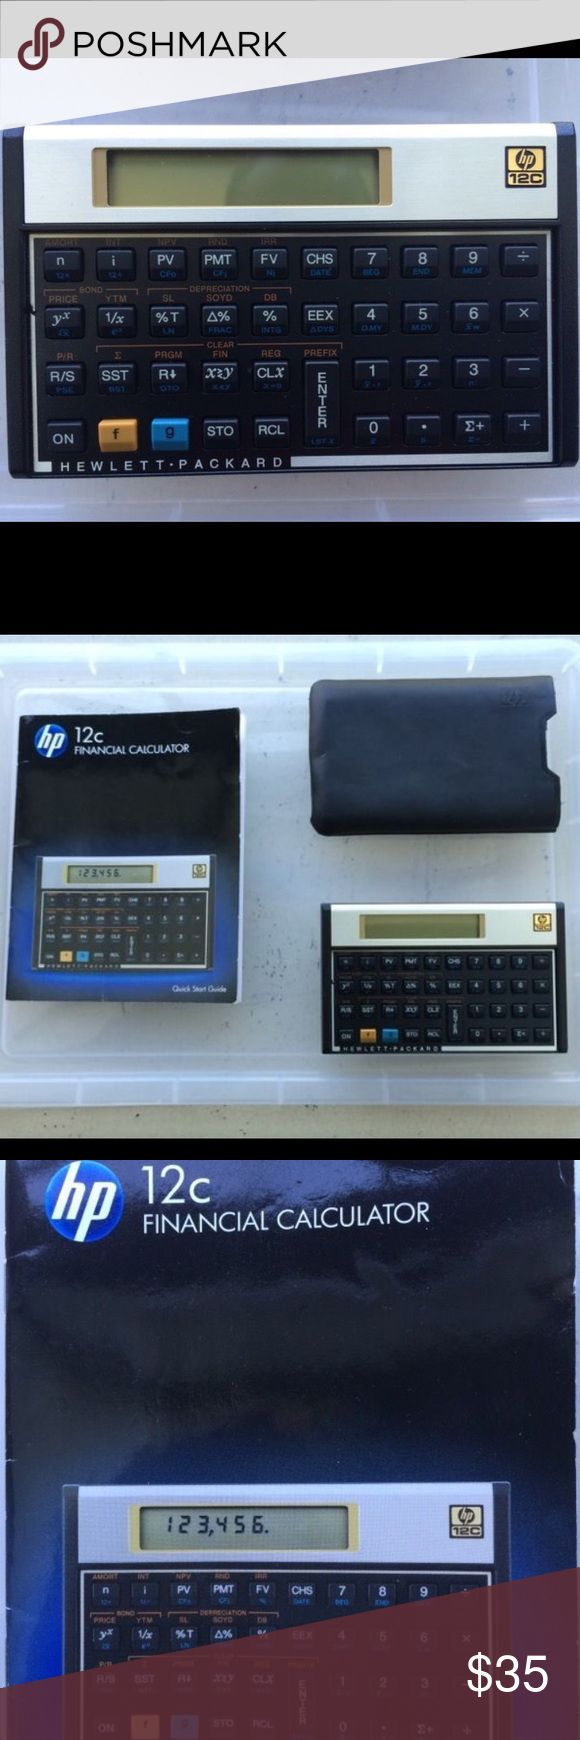 HP 12-C financial calculator The HP 12-C financial calculator features built-in financial functions and statistics, uses Reverse Polish Notation (RPN), more than 120 built-in features including but not limited to cash flow analysis. It has 10 character, 1 line LCD display. Device measures 5.0 x 0.6 x 3.1 inches (WxHxD). HP Accessories